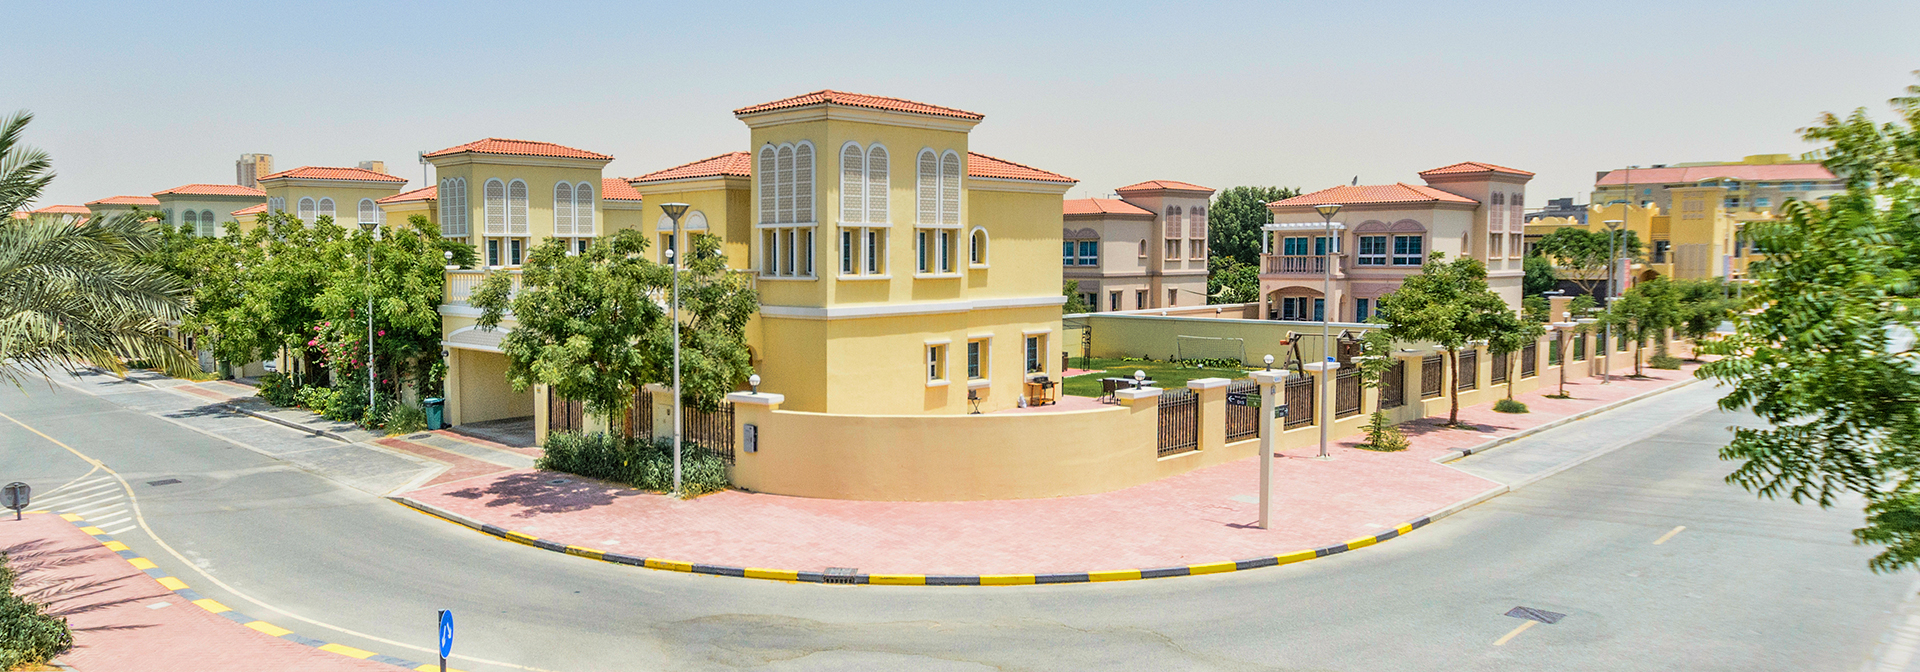 Jumeirah Village | CORE Real Estate Dubai